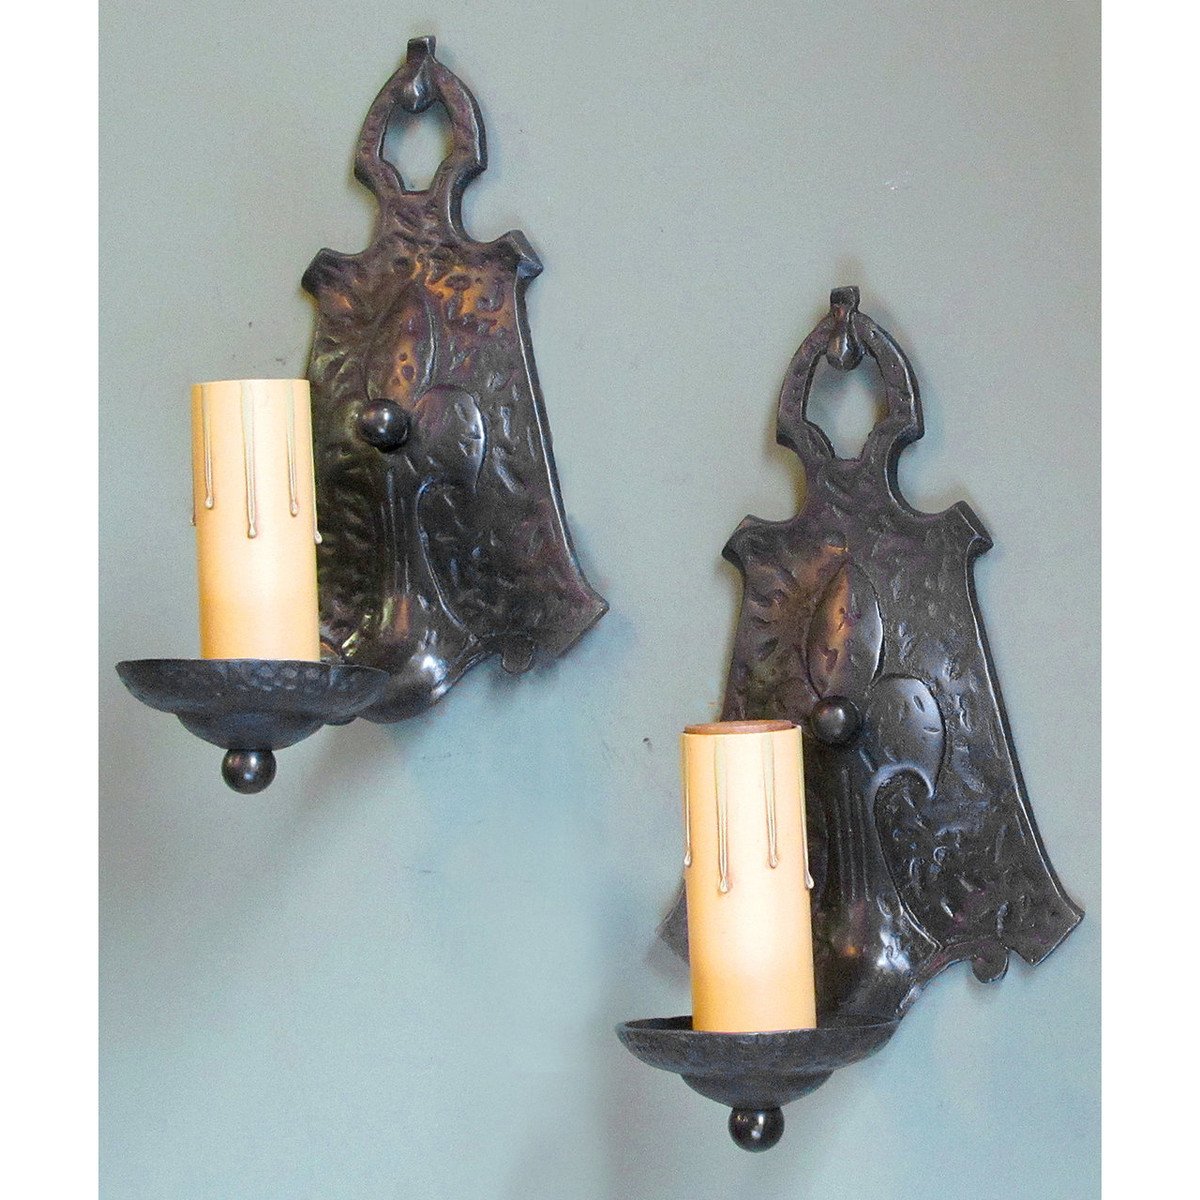 L13163 - Antique Tudor Revival Style Candle Sconces